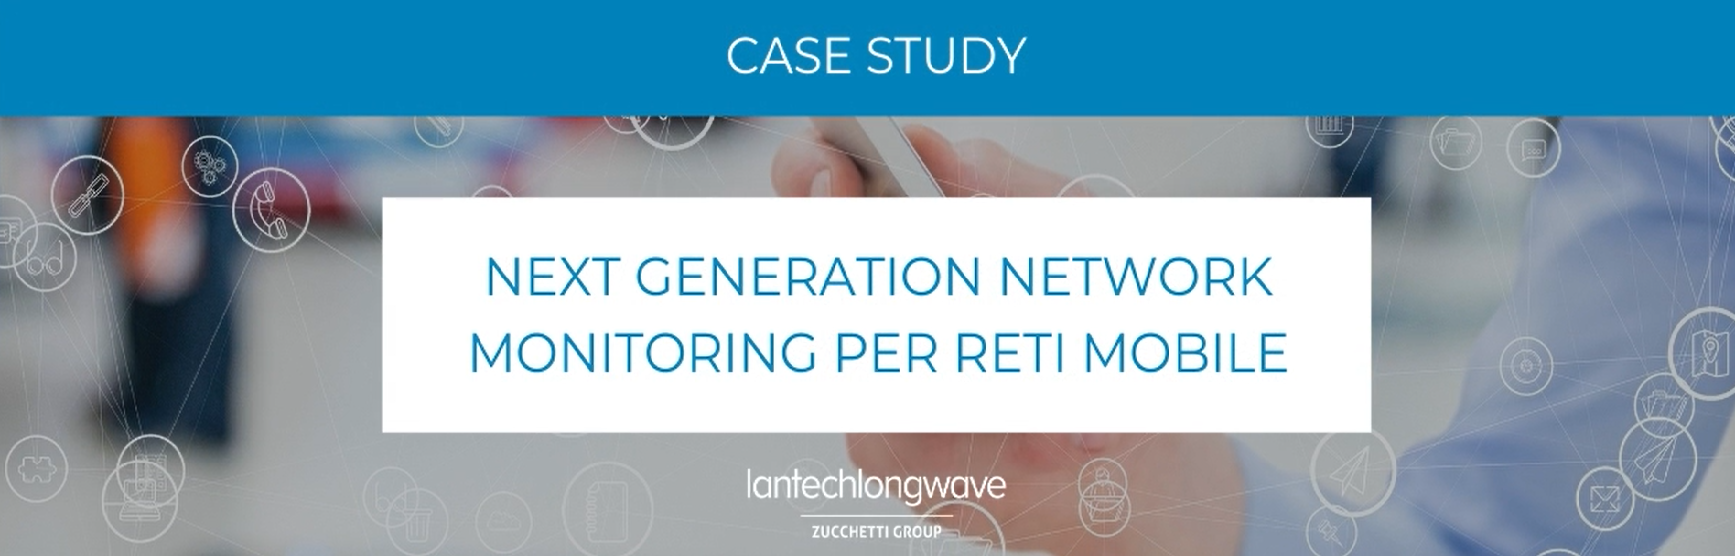 Next generation network monitoring per reti mobili